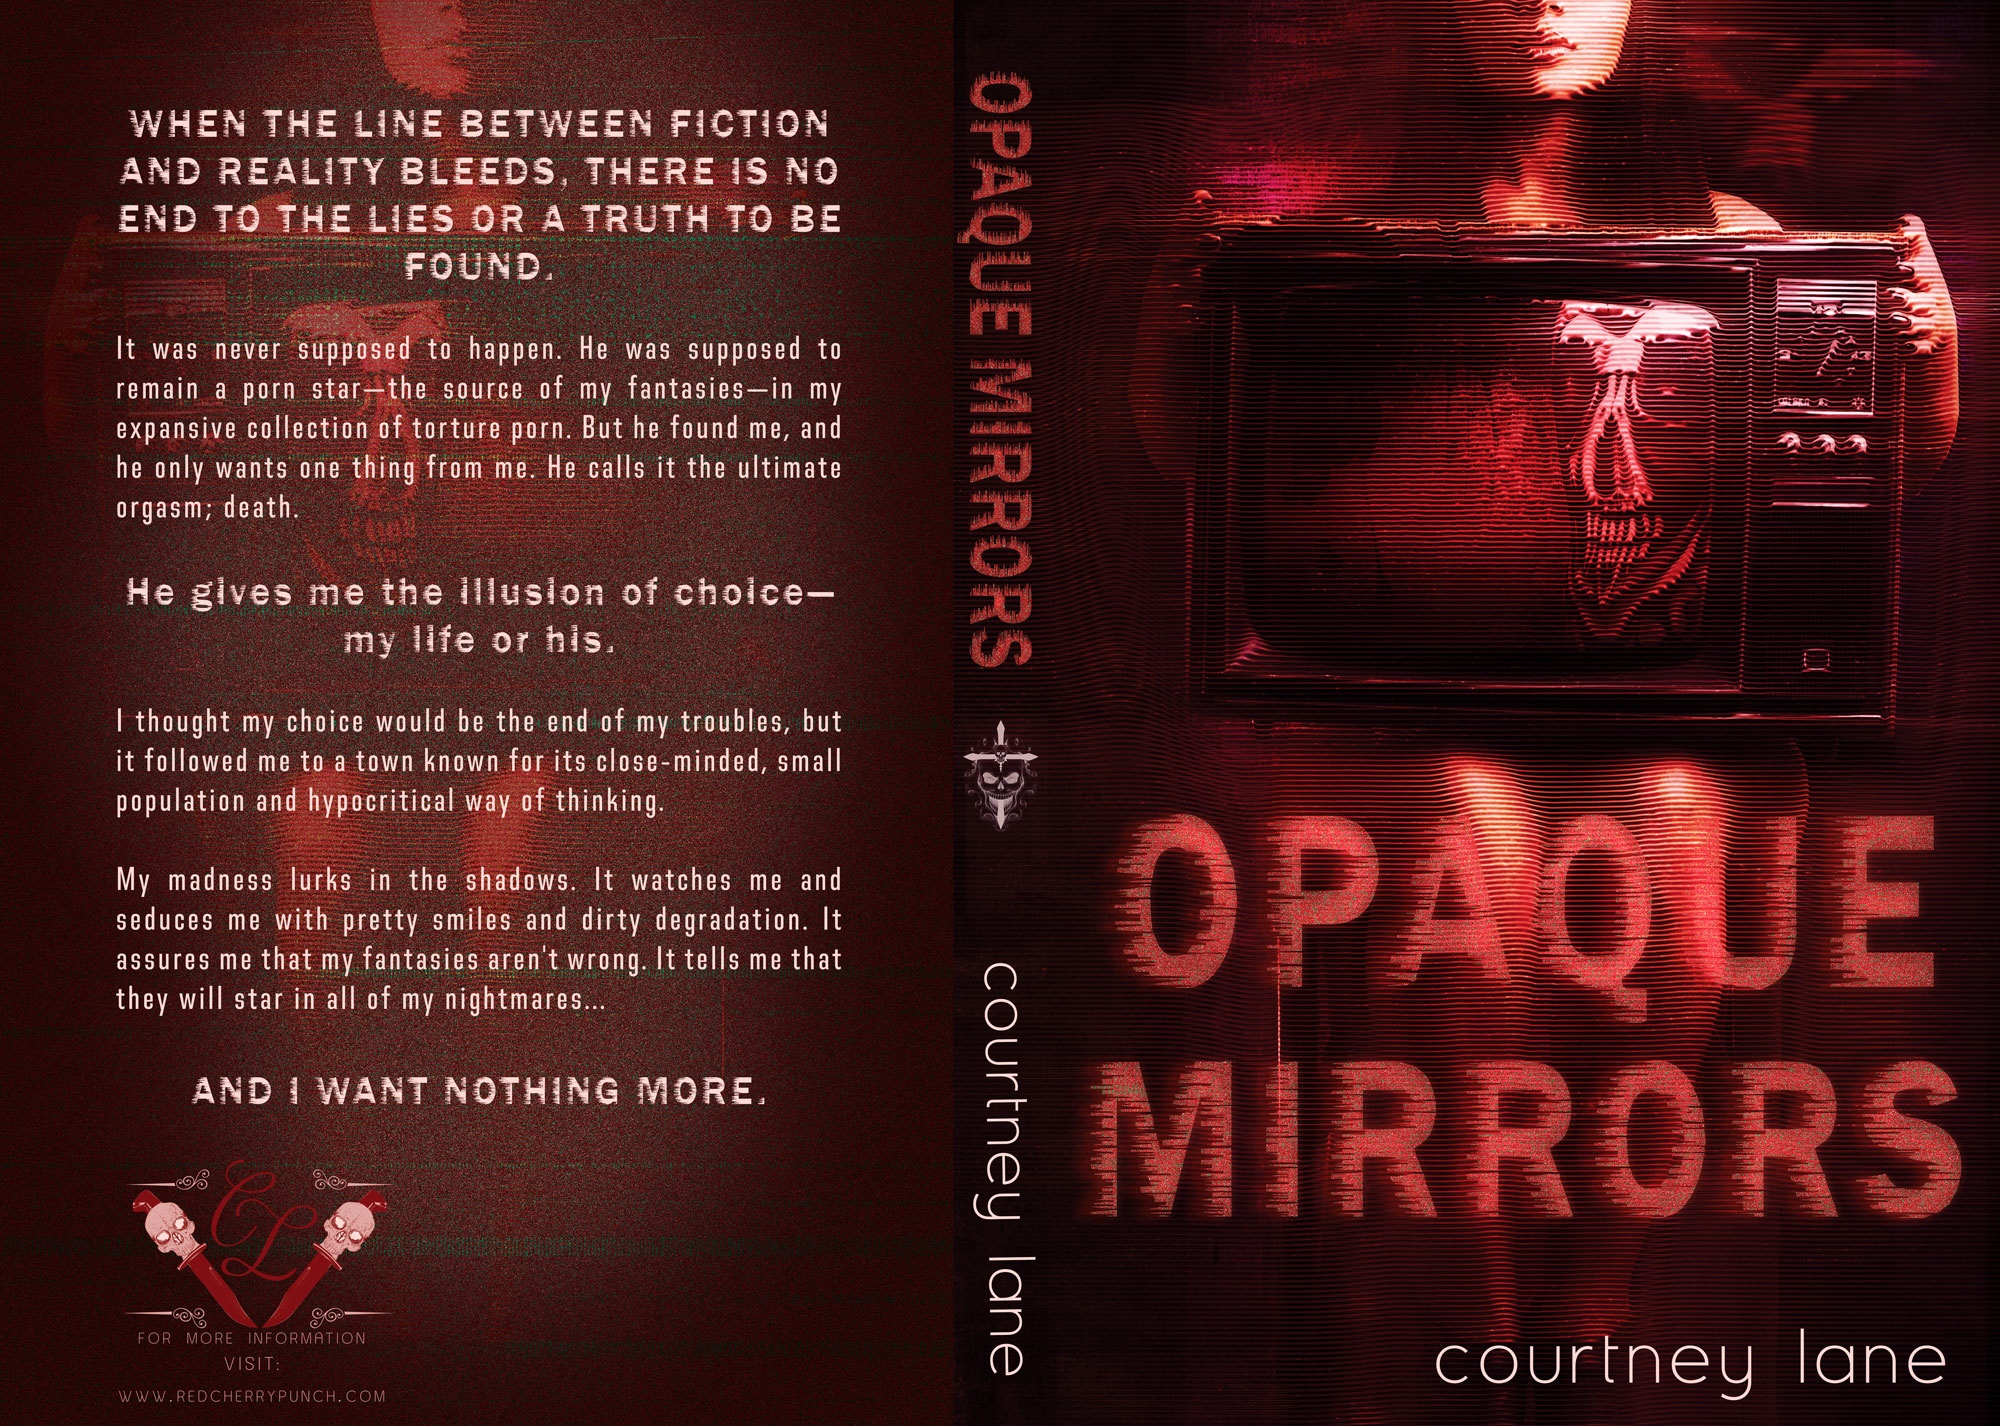 opaque mirrors full cover